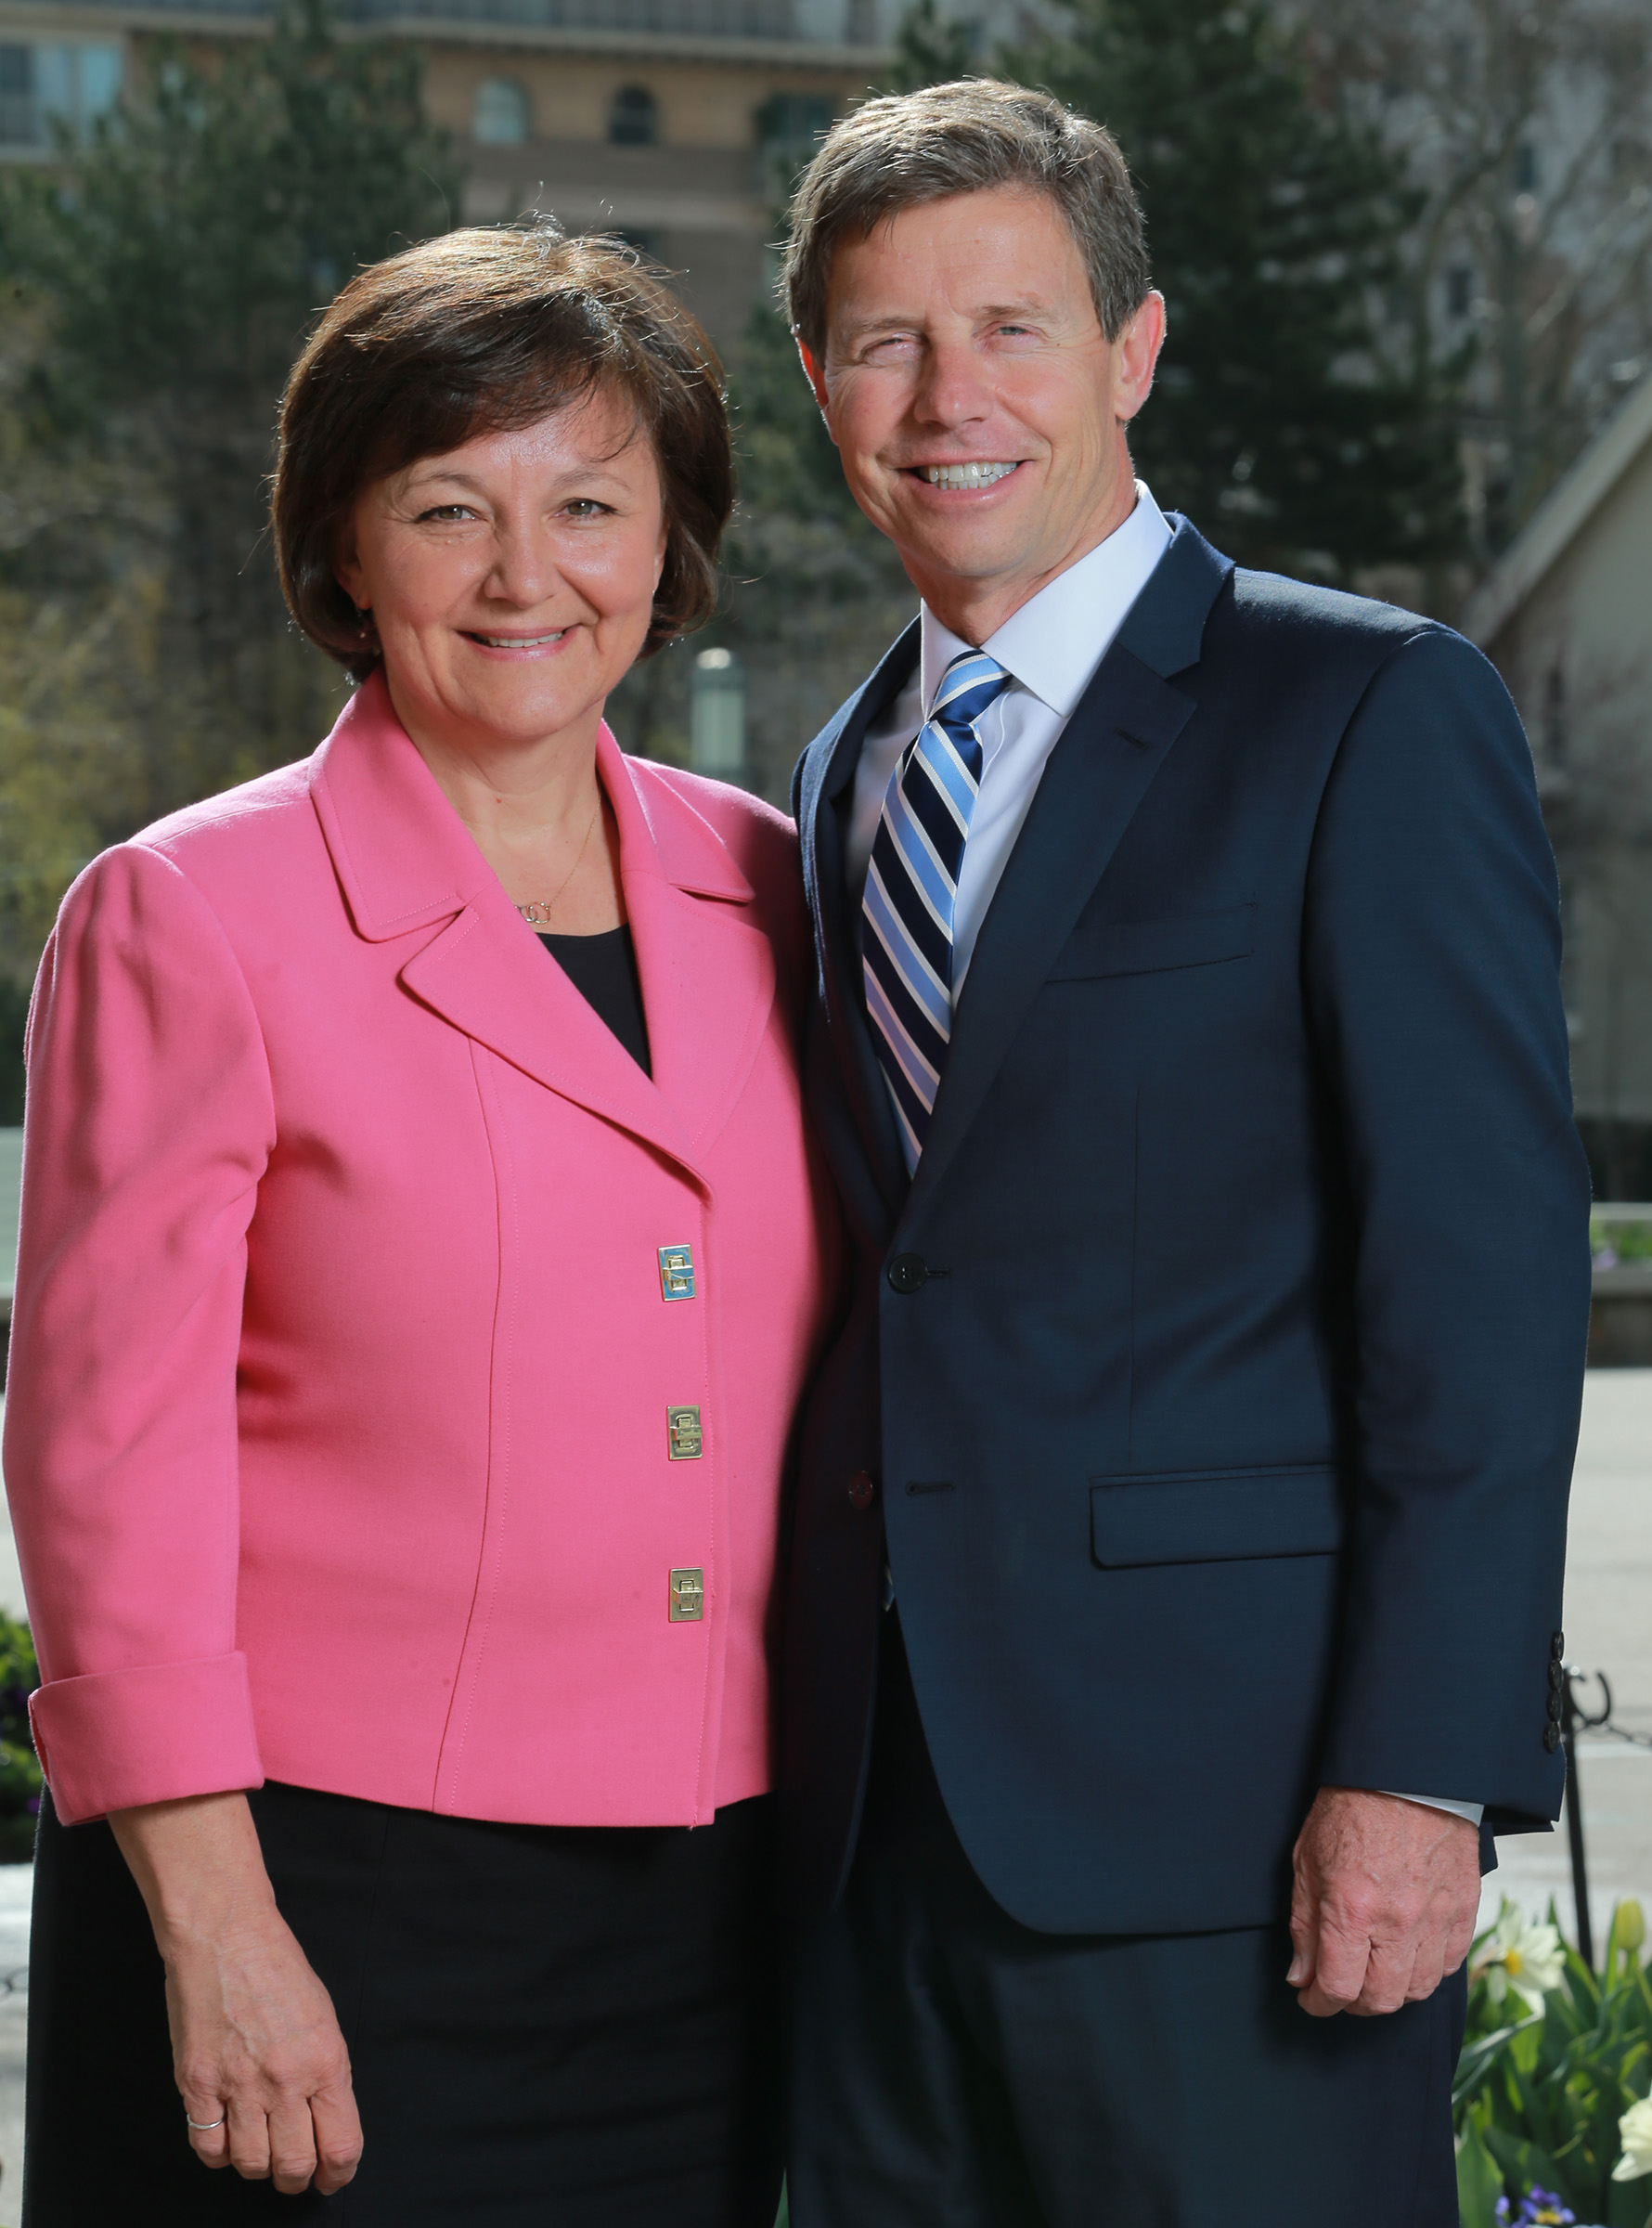 Elder S. Mark Palmer with his wife, Jacqueline Ann Wood.